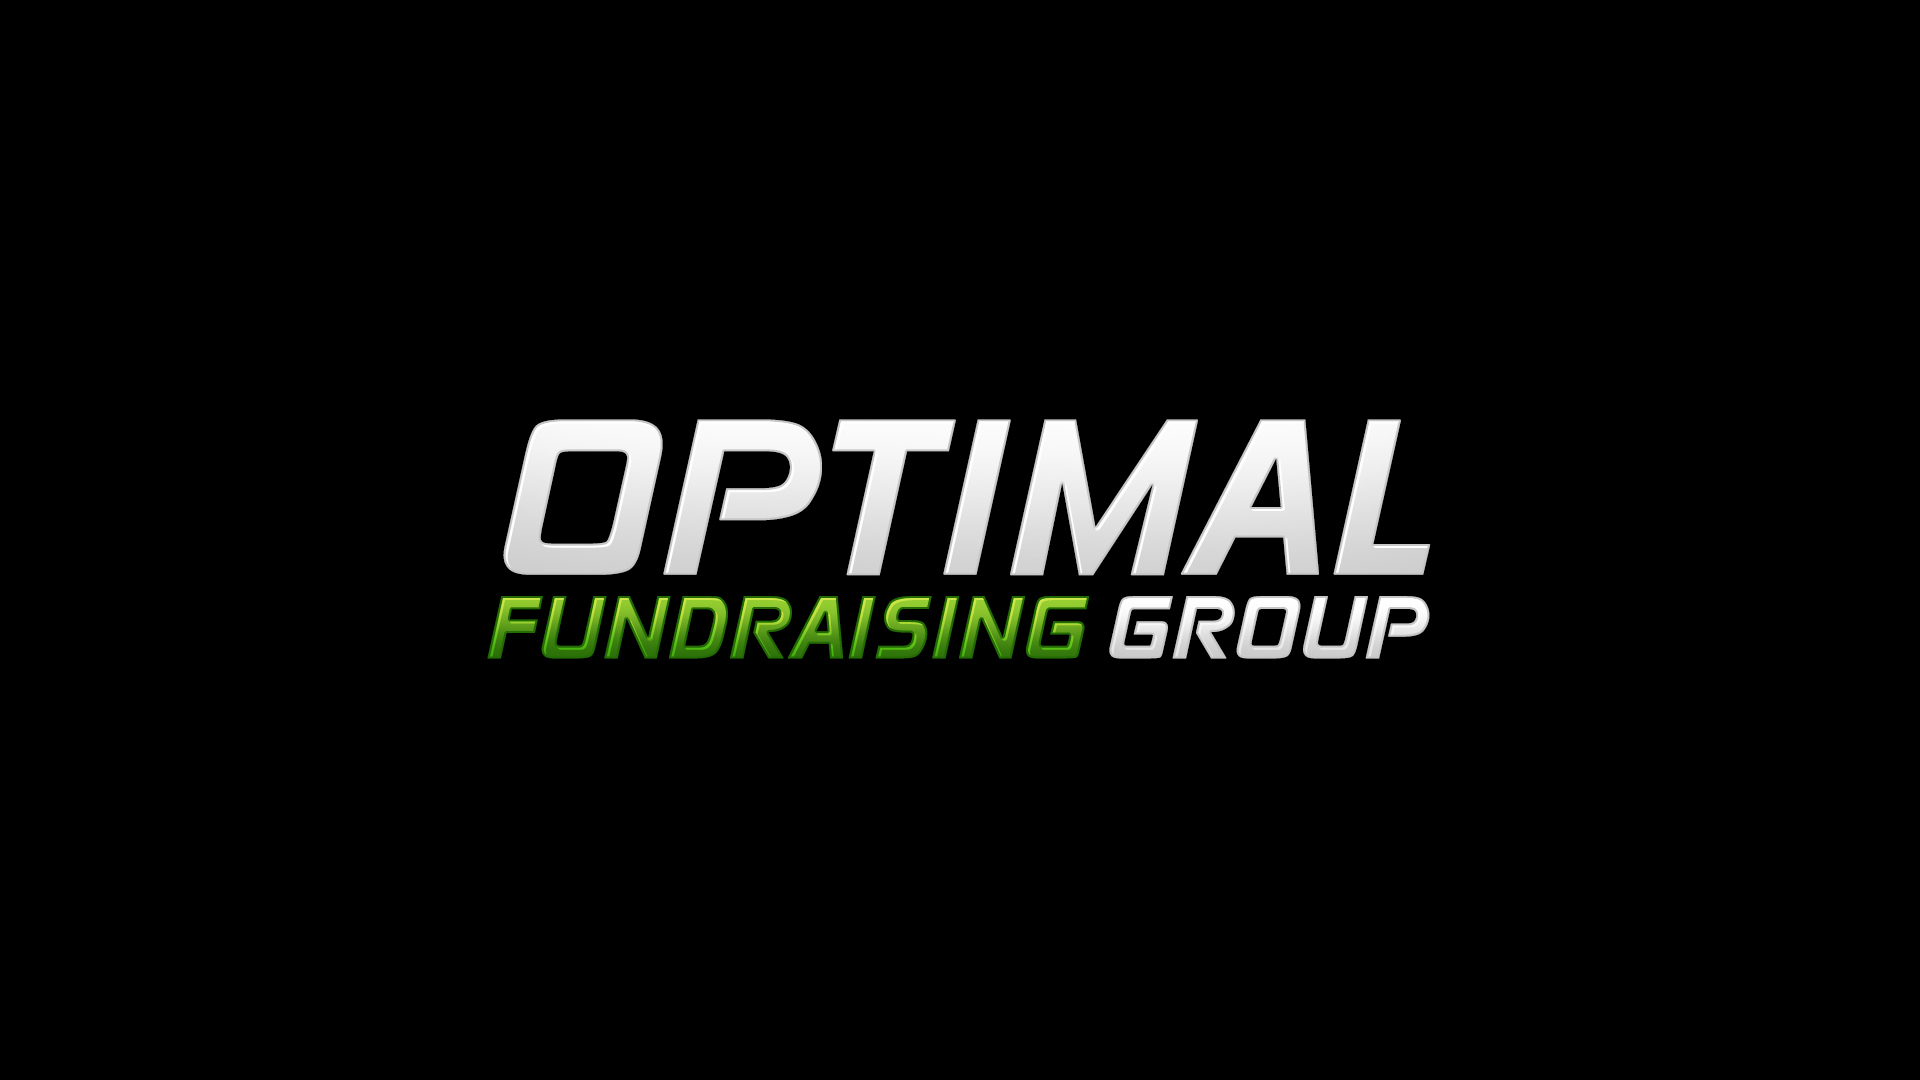 Optimal Fundraising Group